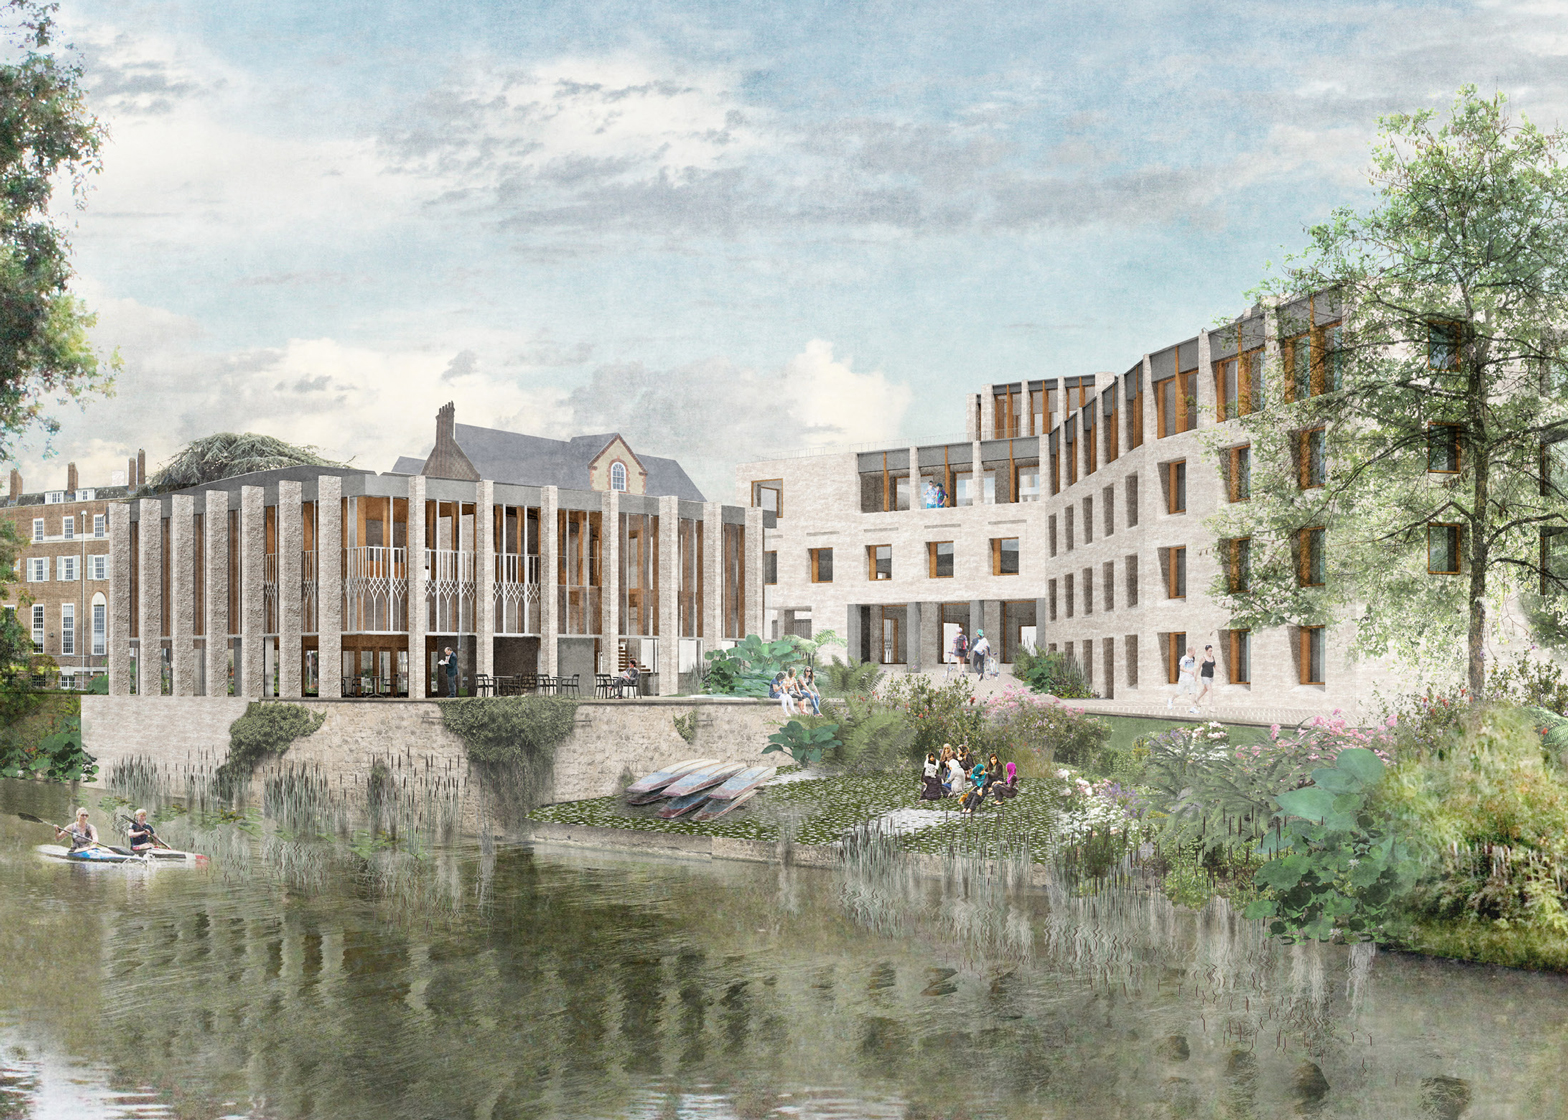 Gort Scott's concept for an extension to St Hilda's College in Oxford